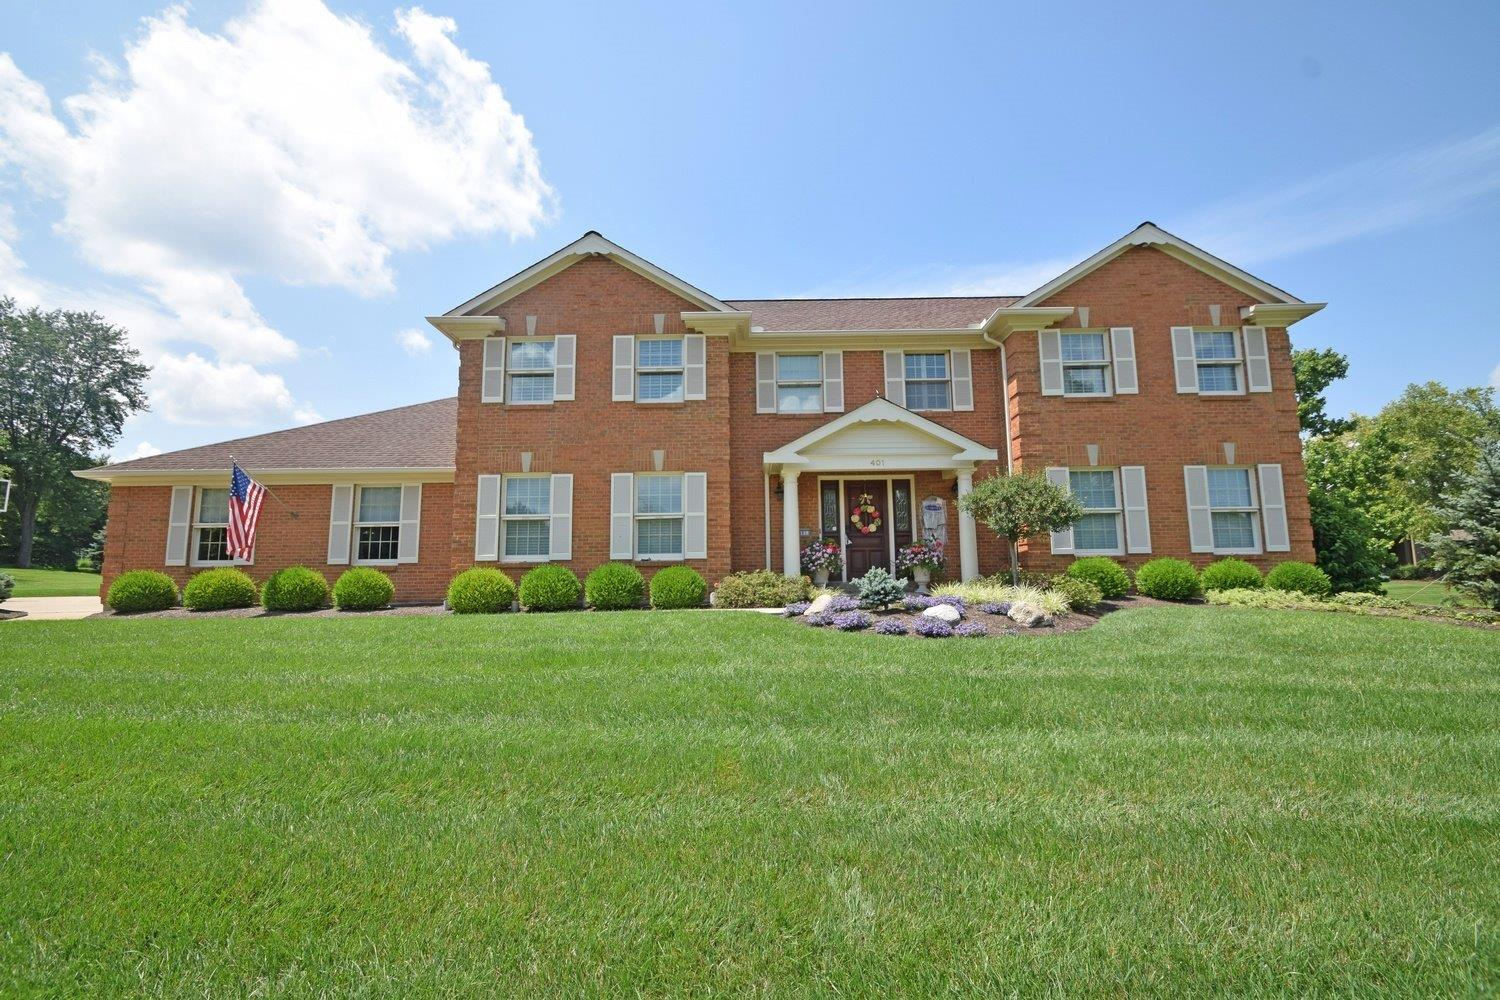 Spacious Coldstream classic w/endless amenities nestled on 1 magnificent acre of lush flat lawns*Gourmet eat-in kit w/granite tops/prof grade app open to great rm w/floor-to-ceil stone FP*Fam rm w/wetbar*Master ste*Backyard oasis w/Trex deck/in-ground pool/sprawling patio w/blt-ins/outdoor kit/BBQ/bar seating*3-car GAR*An entertainer's delight!